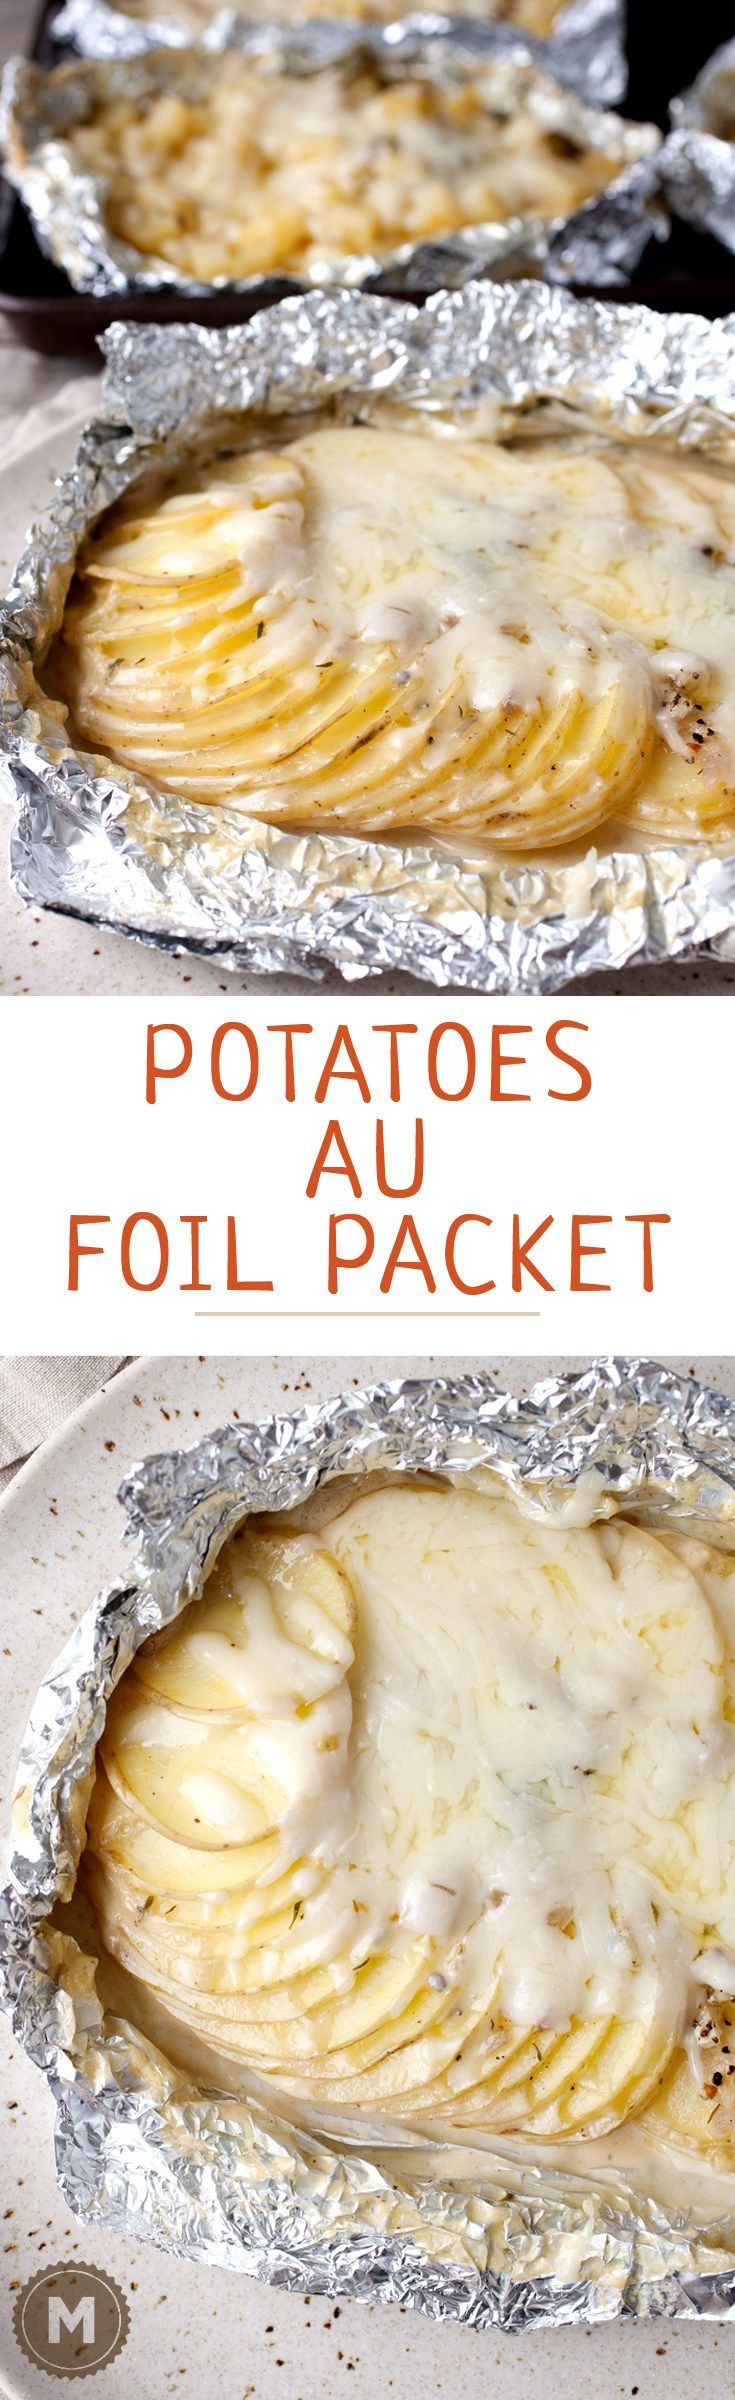 Potatoes Au Gratin Foil Packets: A classic French side dish made on the grill so you can keep your oven off! A great side dish for any grilled summer meal.   macheesmo.com